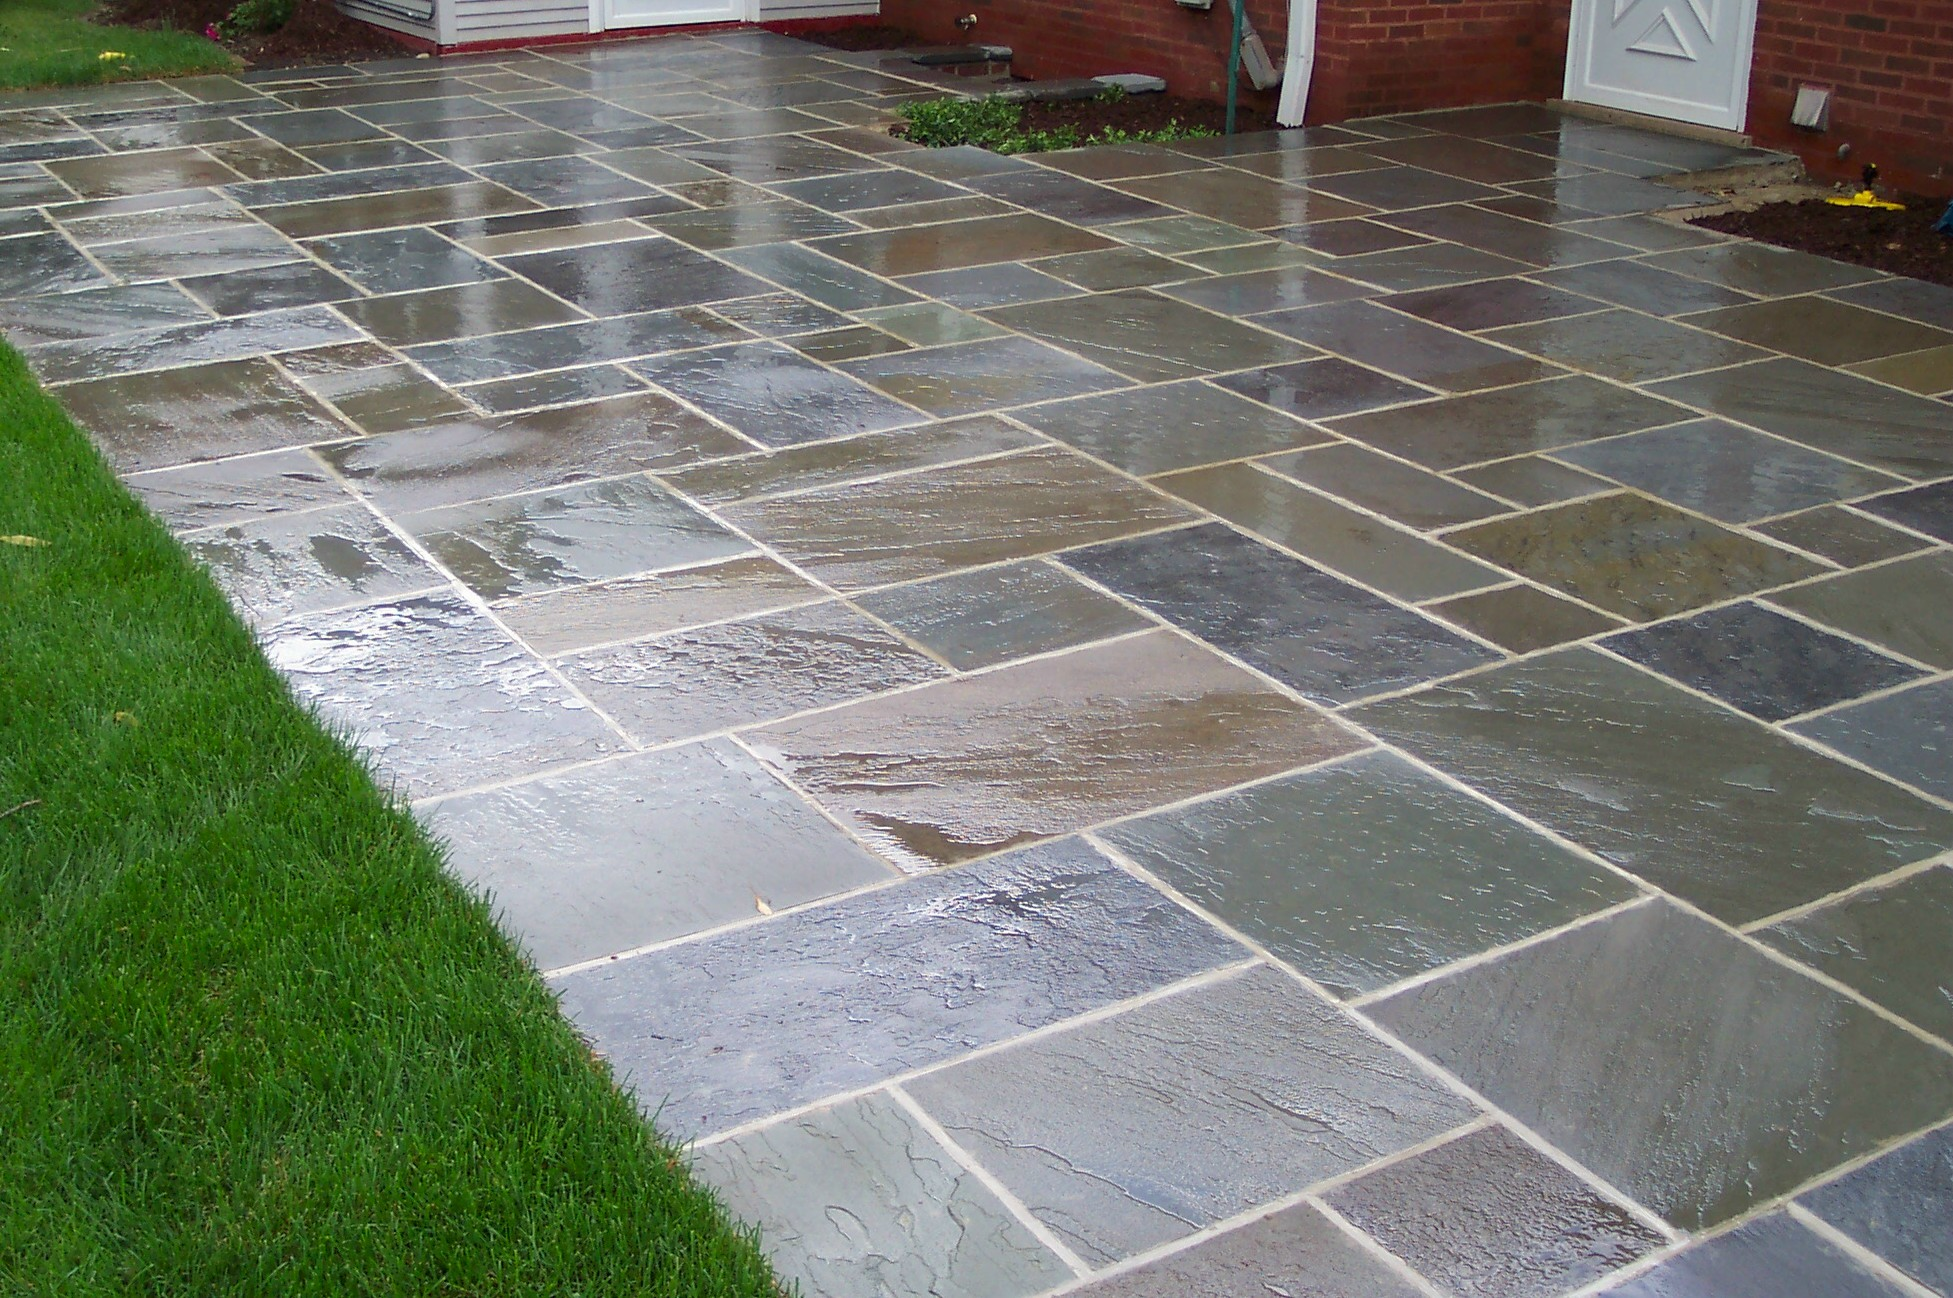 Stone Tiles For Backyard : Bluestone Patio Pavers  Patio Design Ideas